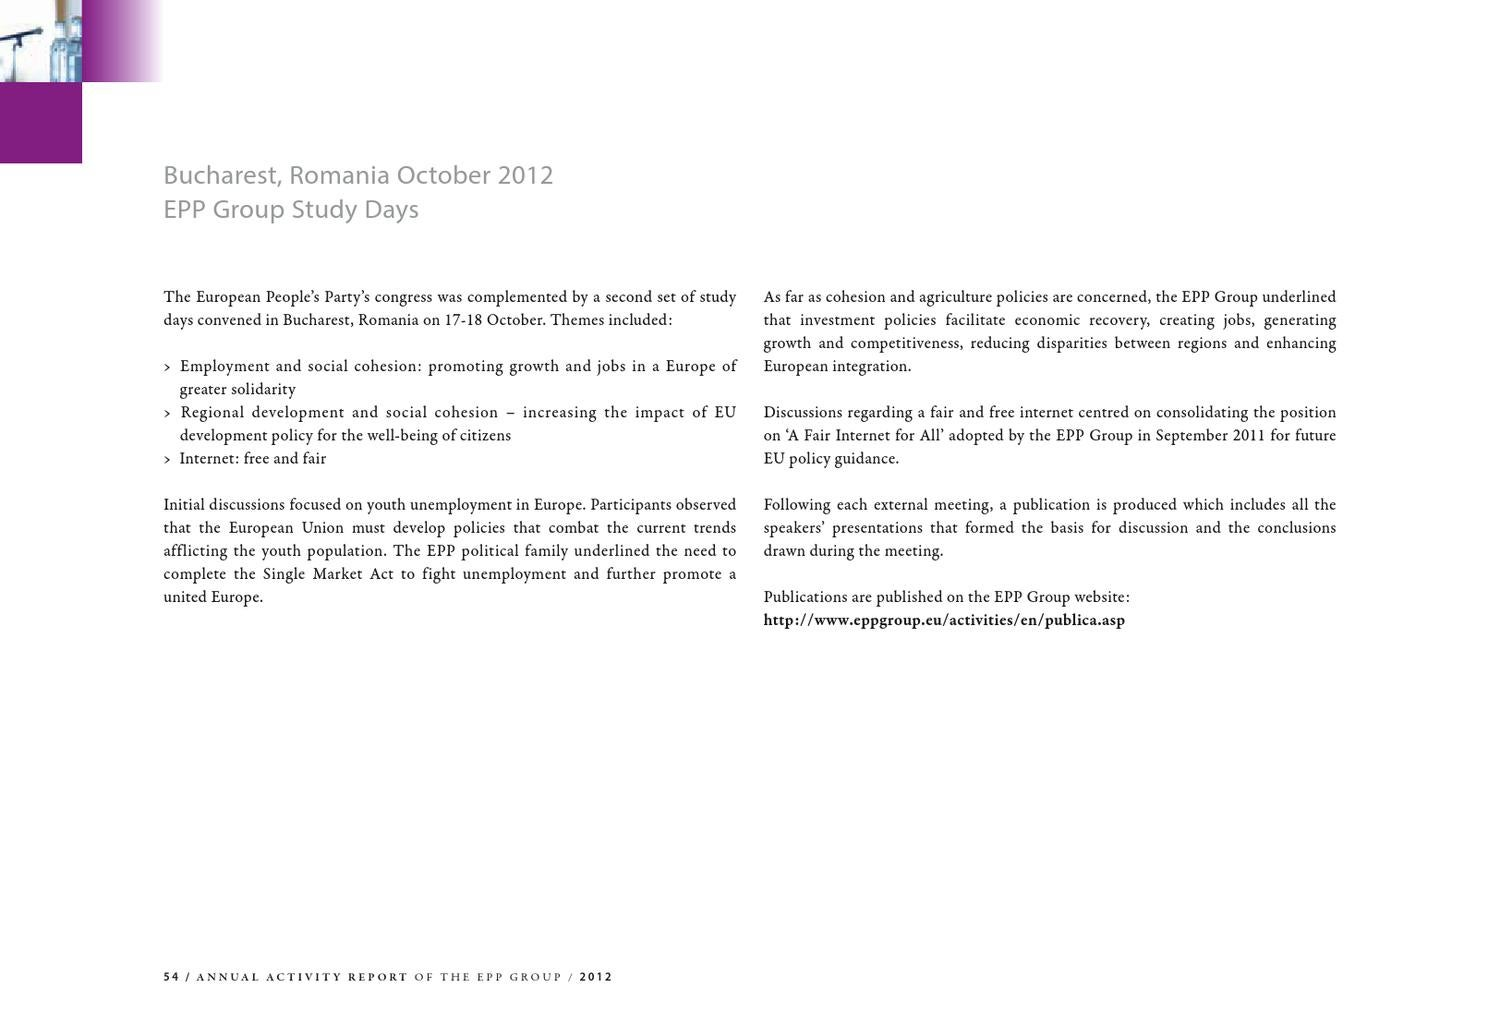 Annual Activity Report 2012 of the EPP Group in the European